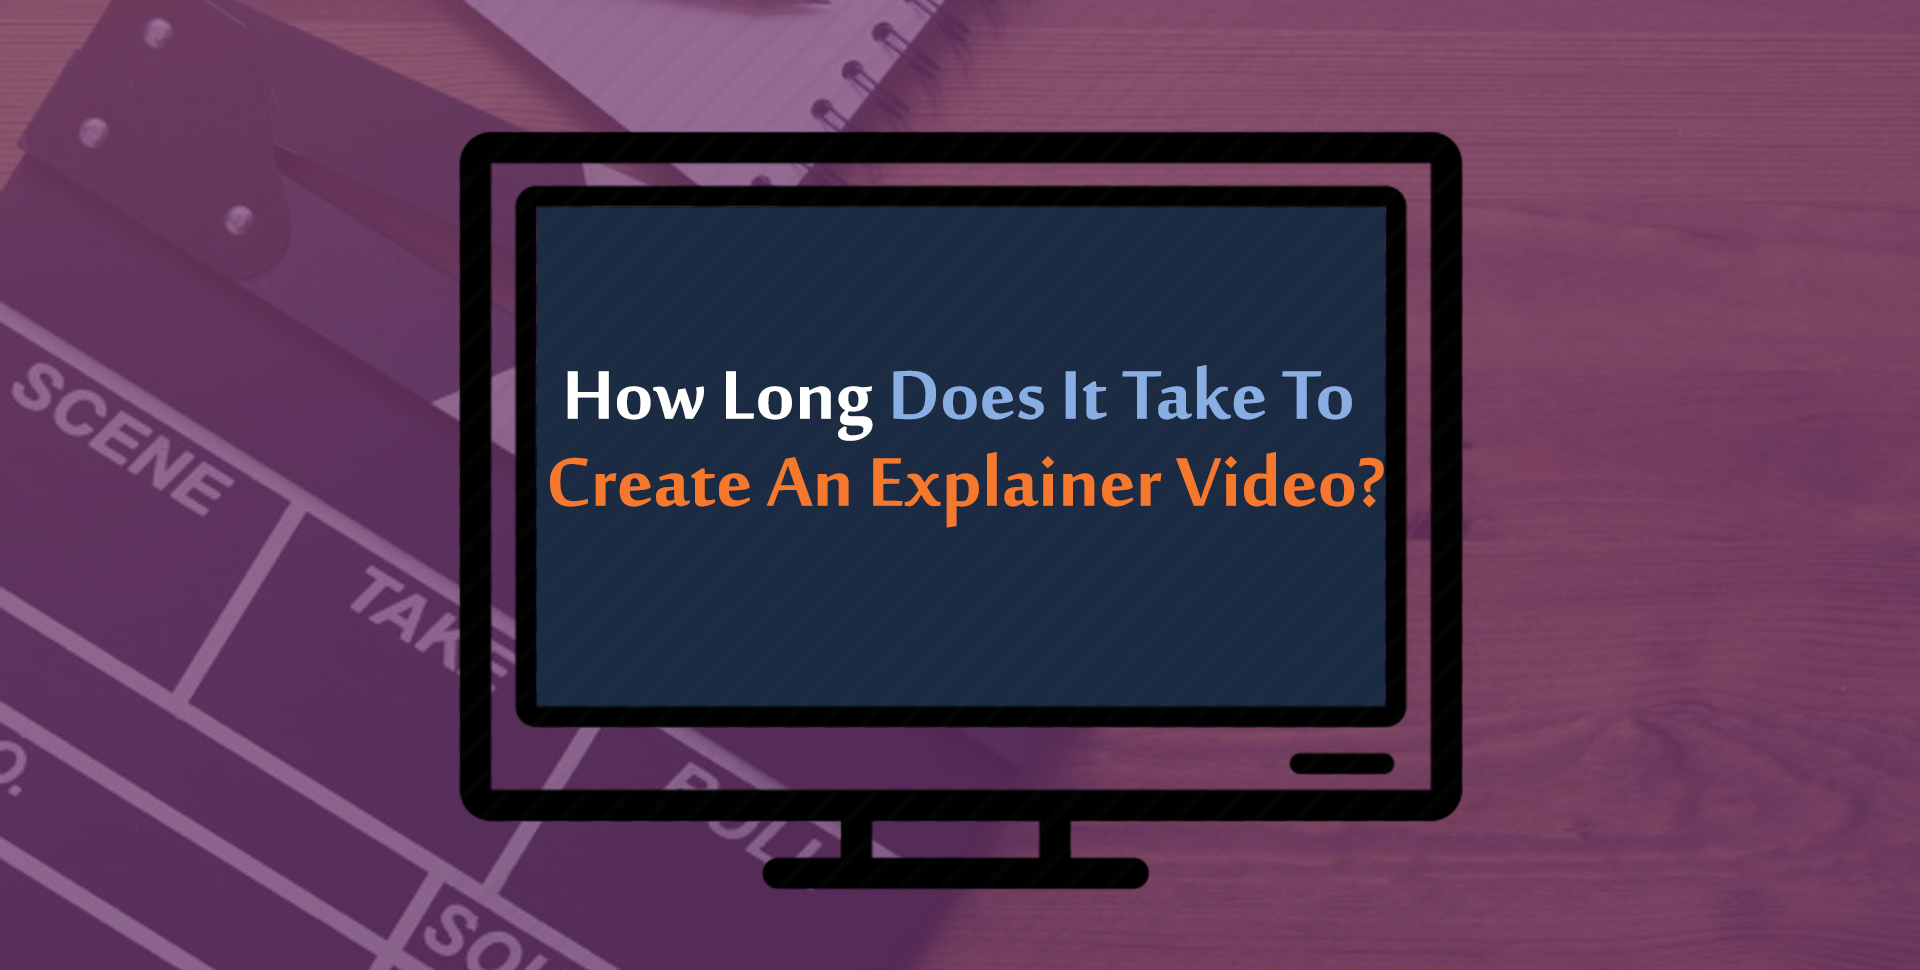 How Long Does it Take to Create an Explainer Video?